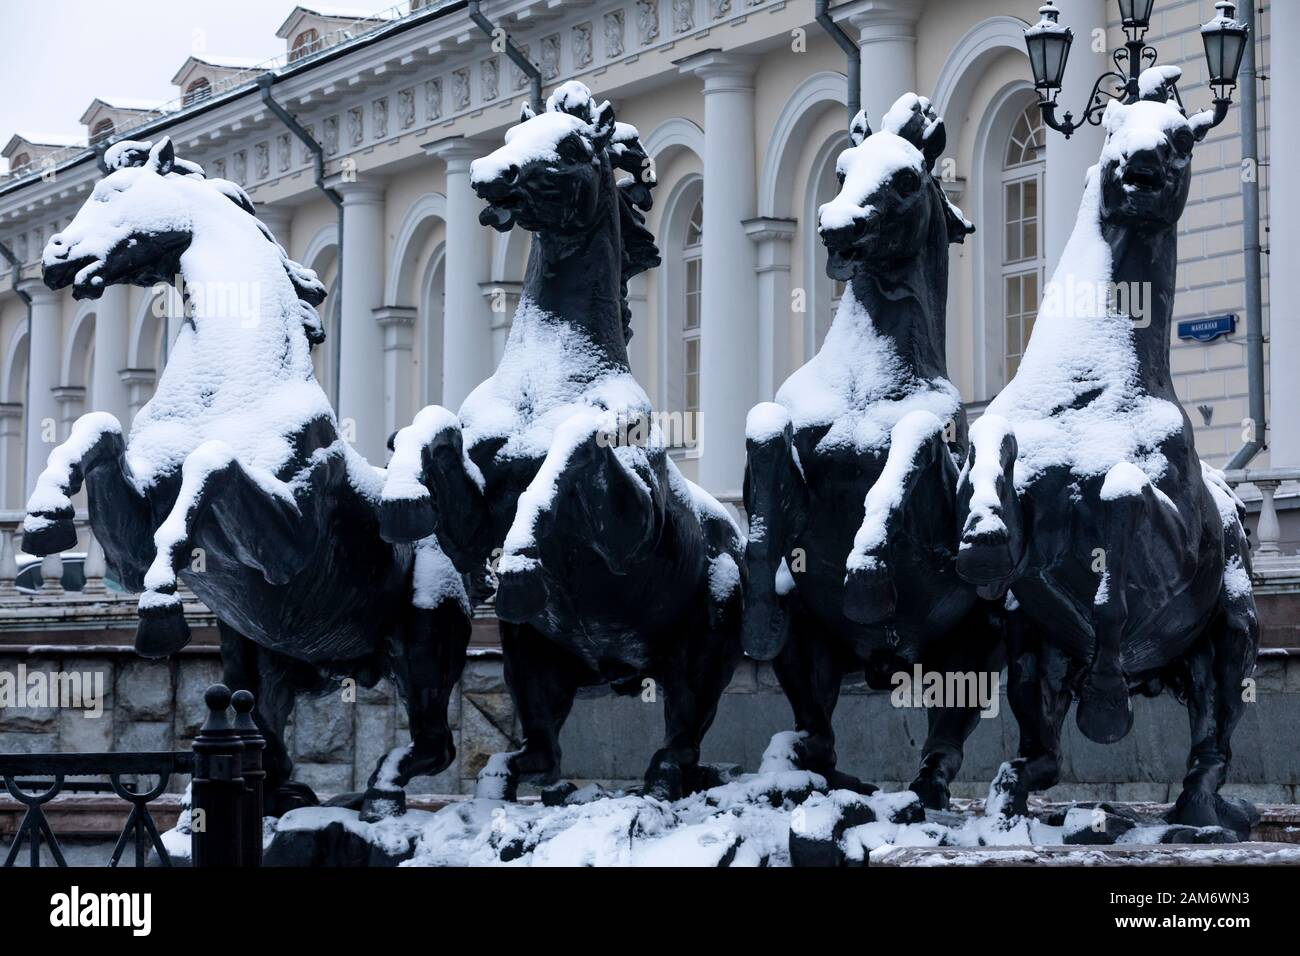 Moscow Russia 11st Of January 2020 Four Horses Sculpture On Manezhnaya Square In Central Moscoow On Winter Season Cover With Snow Stock Photo Alamy